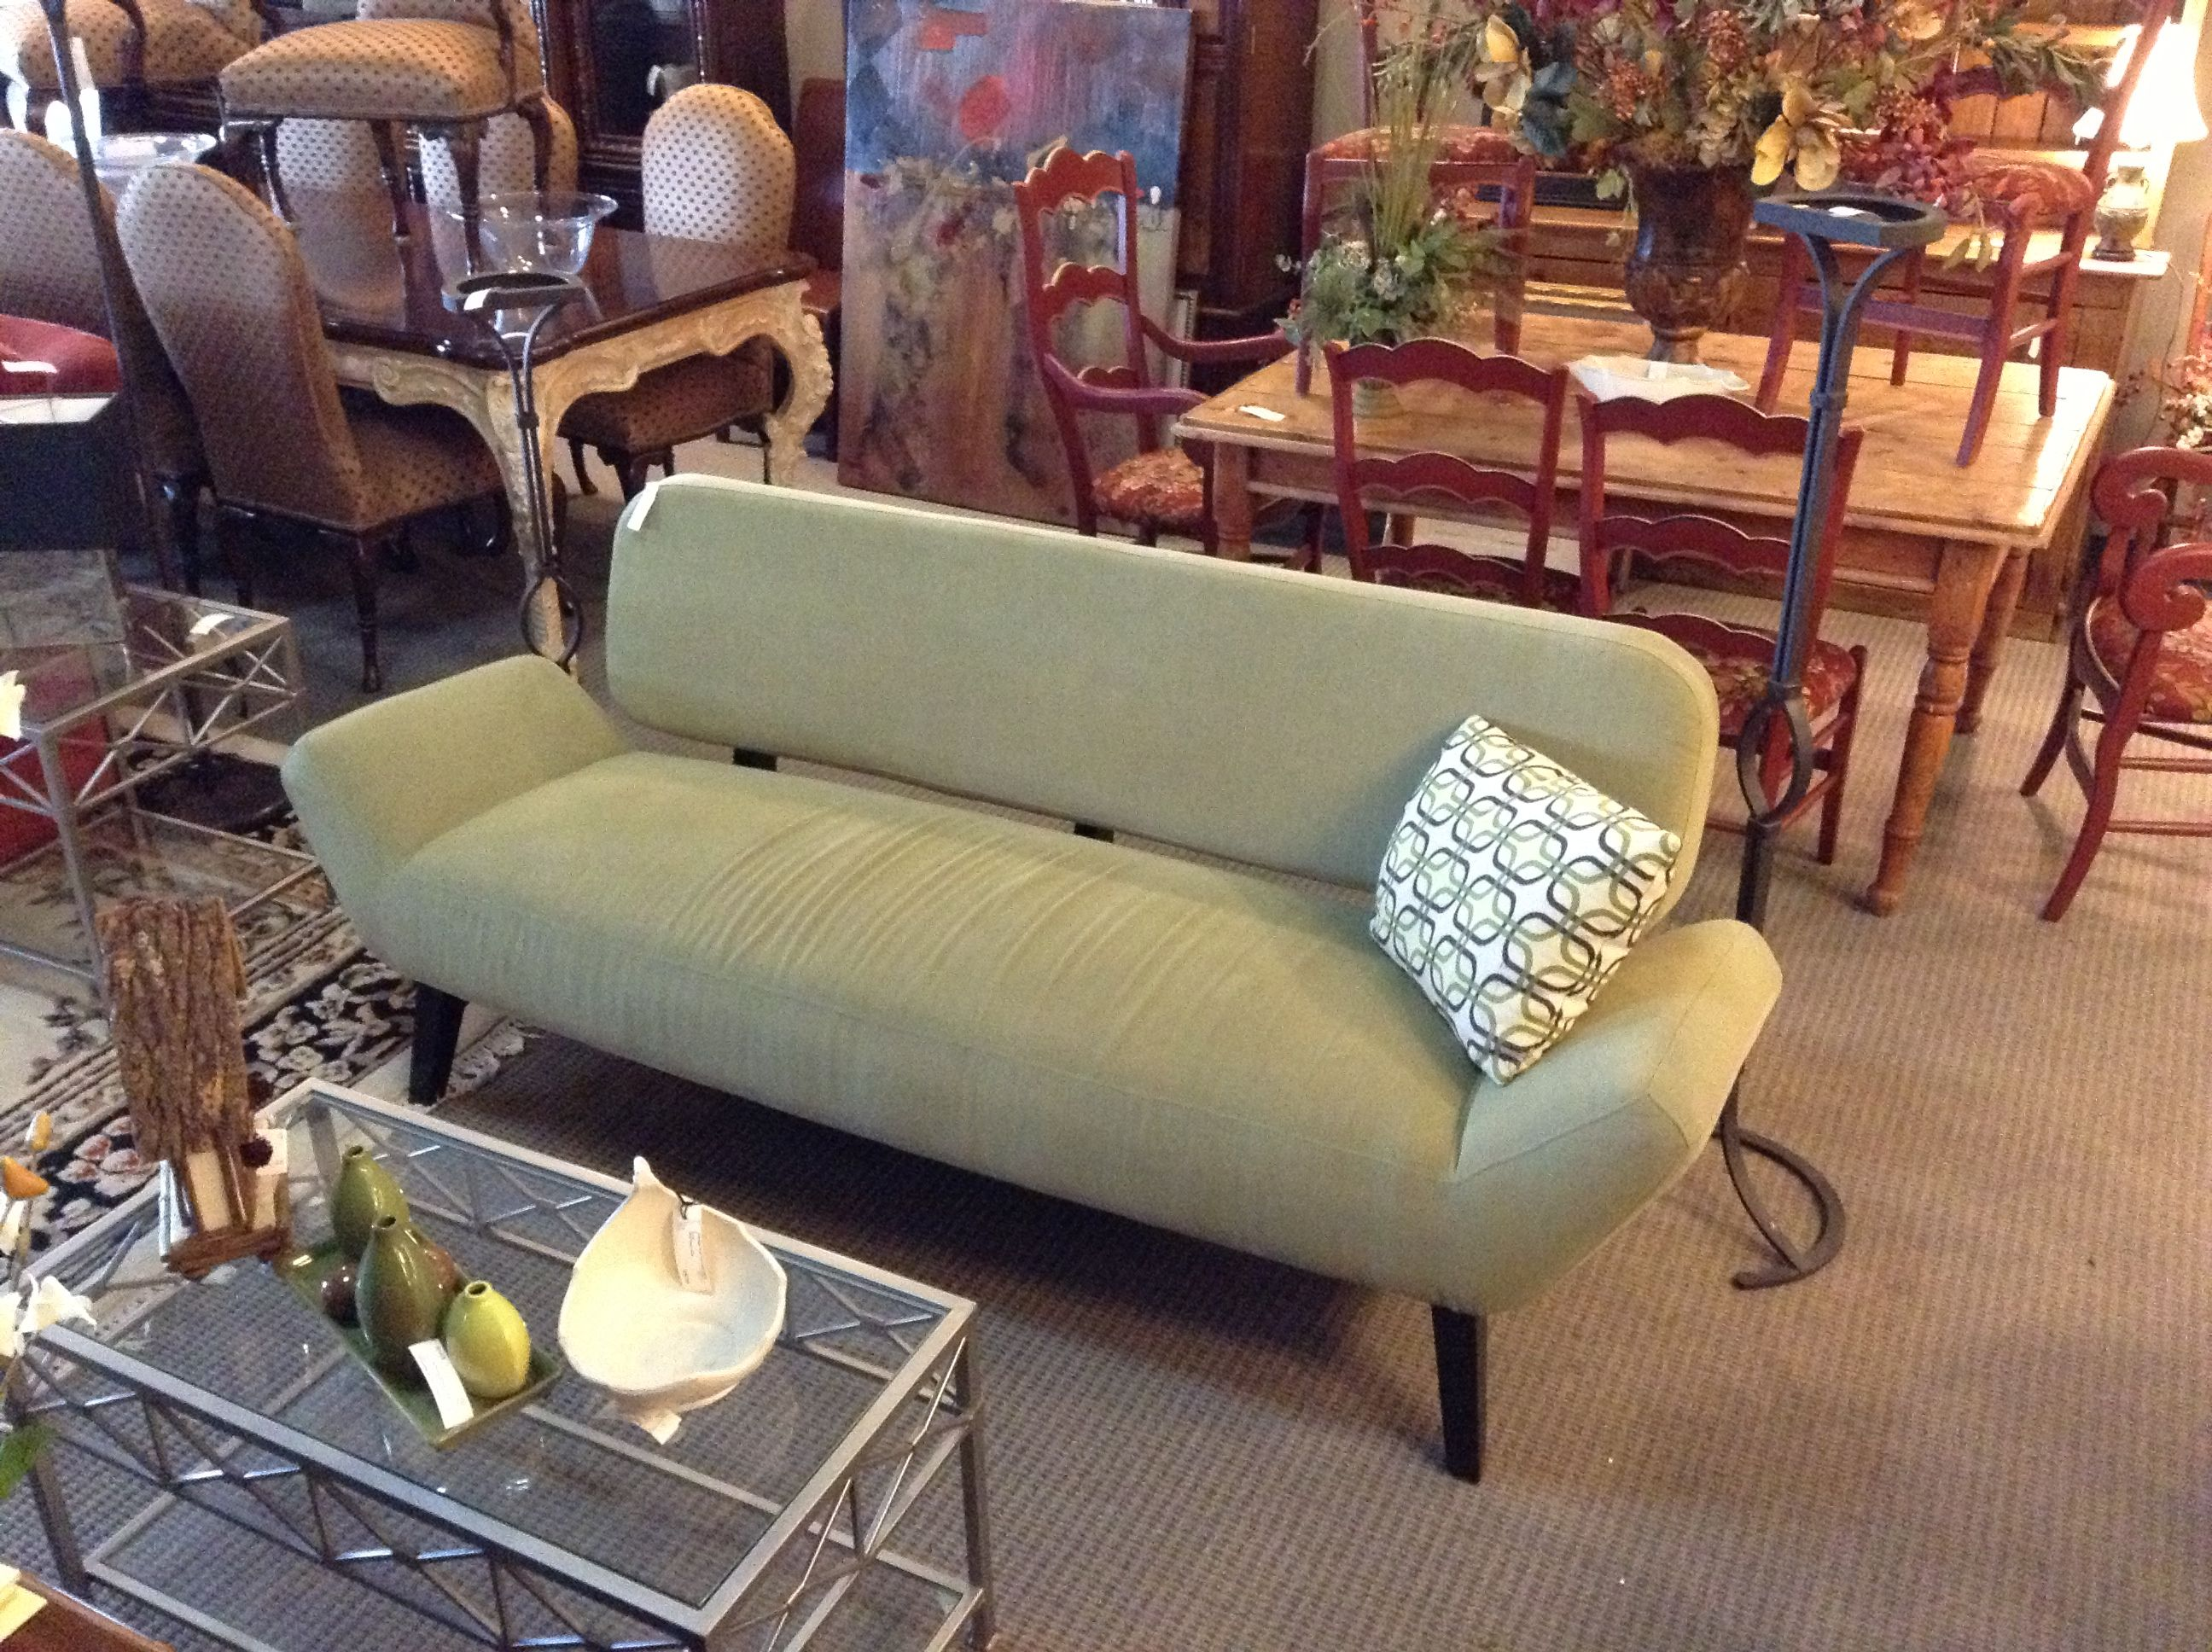 Olive Green Contemporary Sofa Found At Design With Consignment In Austin Texas I Gotta